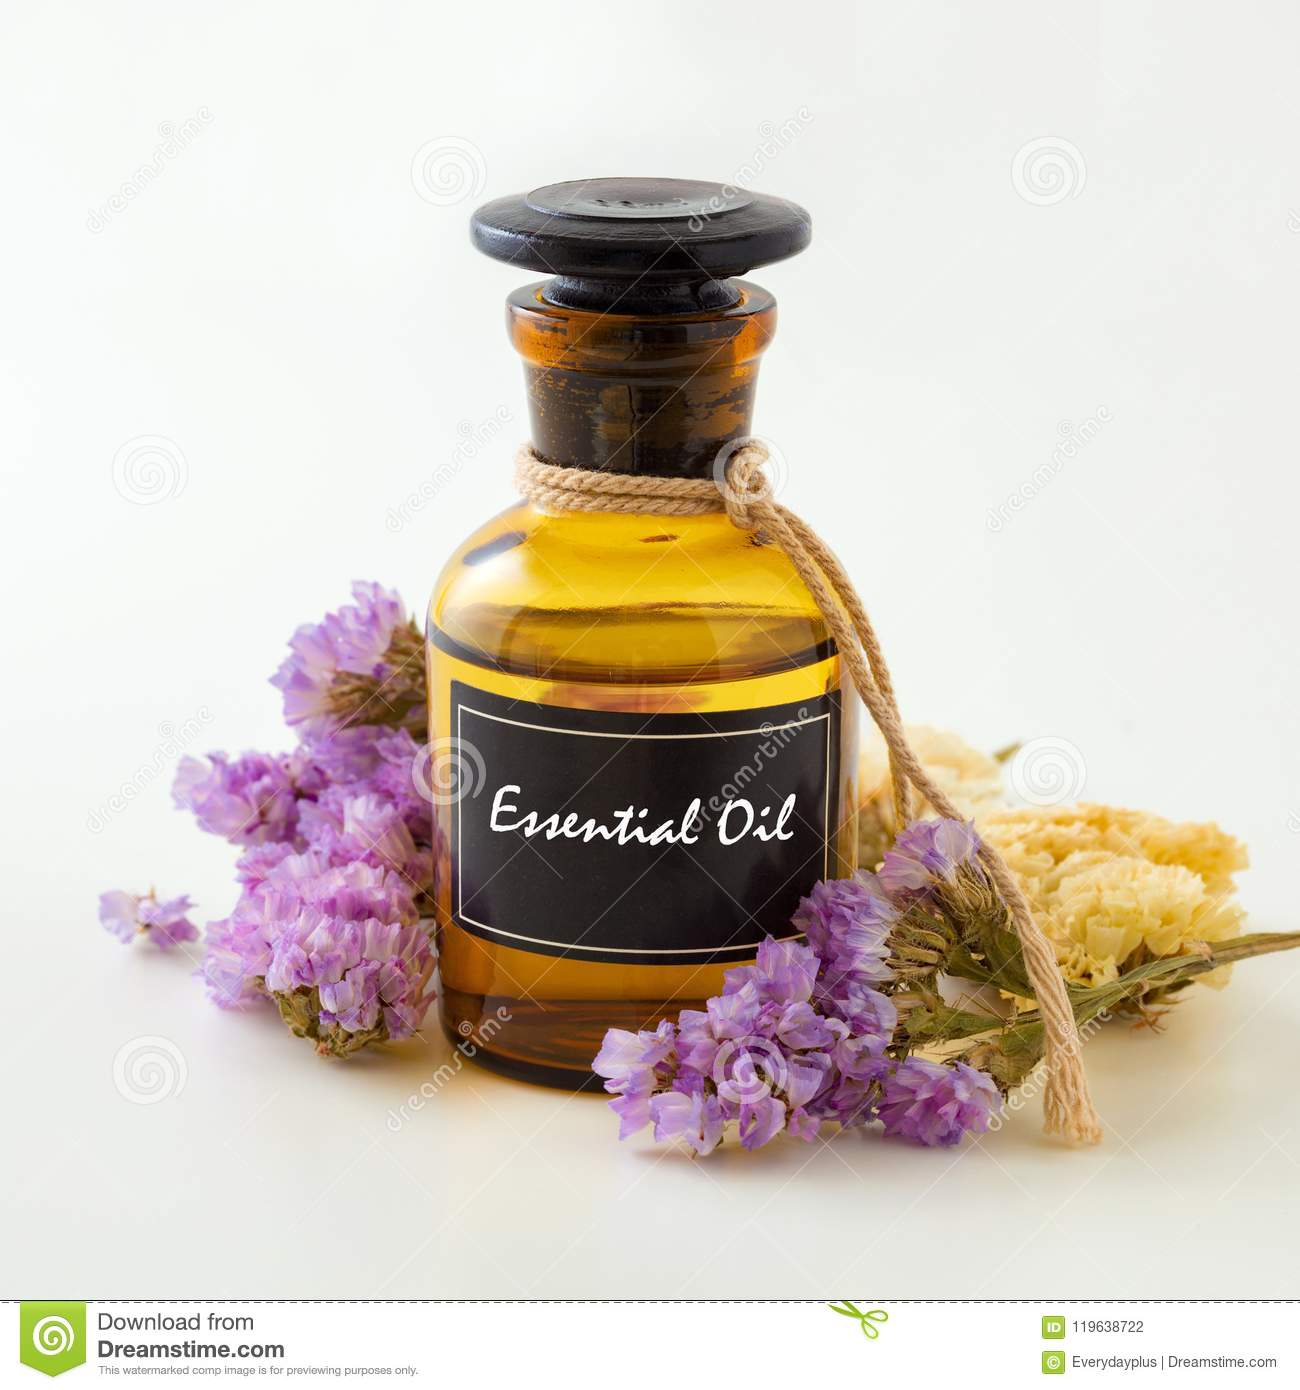 Essential Oil On White Background Stock Photo Image Of Medicine